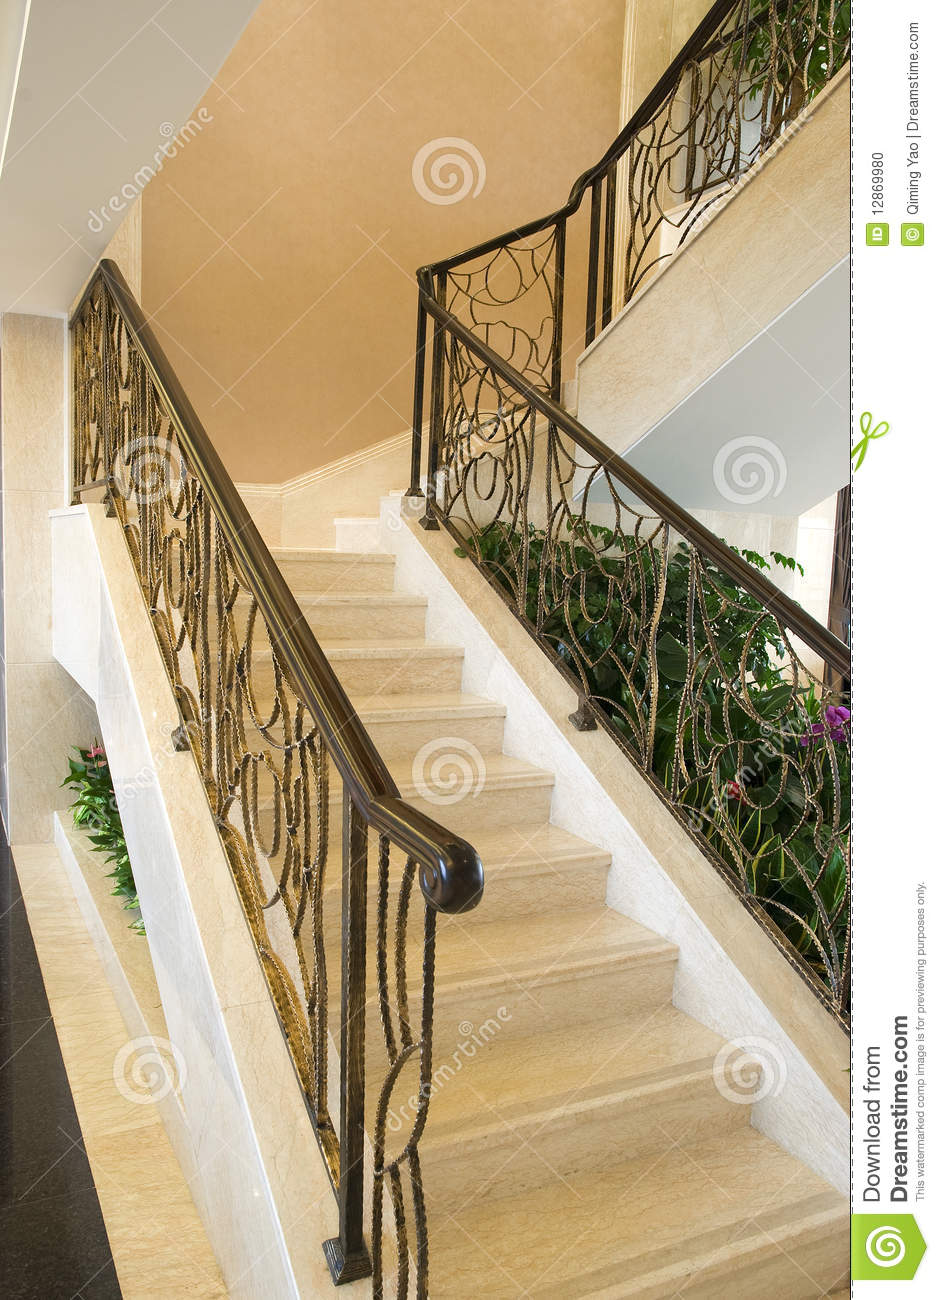 Customer Needs Analysis besides Empty Street Wall moreover Interior Stone Wall Design Ideas Youtube Then Interior Stone Wall Design together with Industrial Loft Apartment With Red Accents also Swedish Style Interior Decorated With Ikea Furniture And Accessories. on empty house interior design